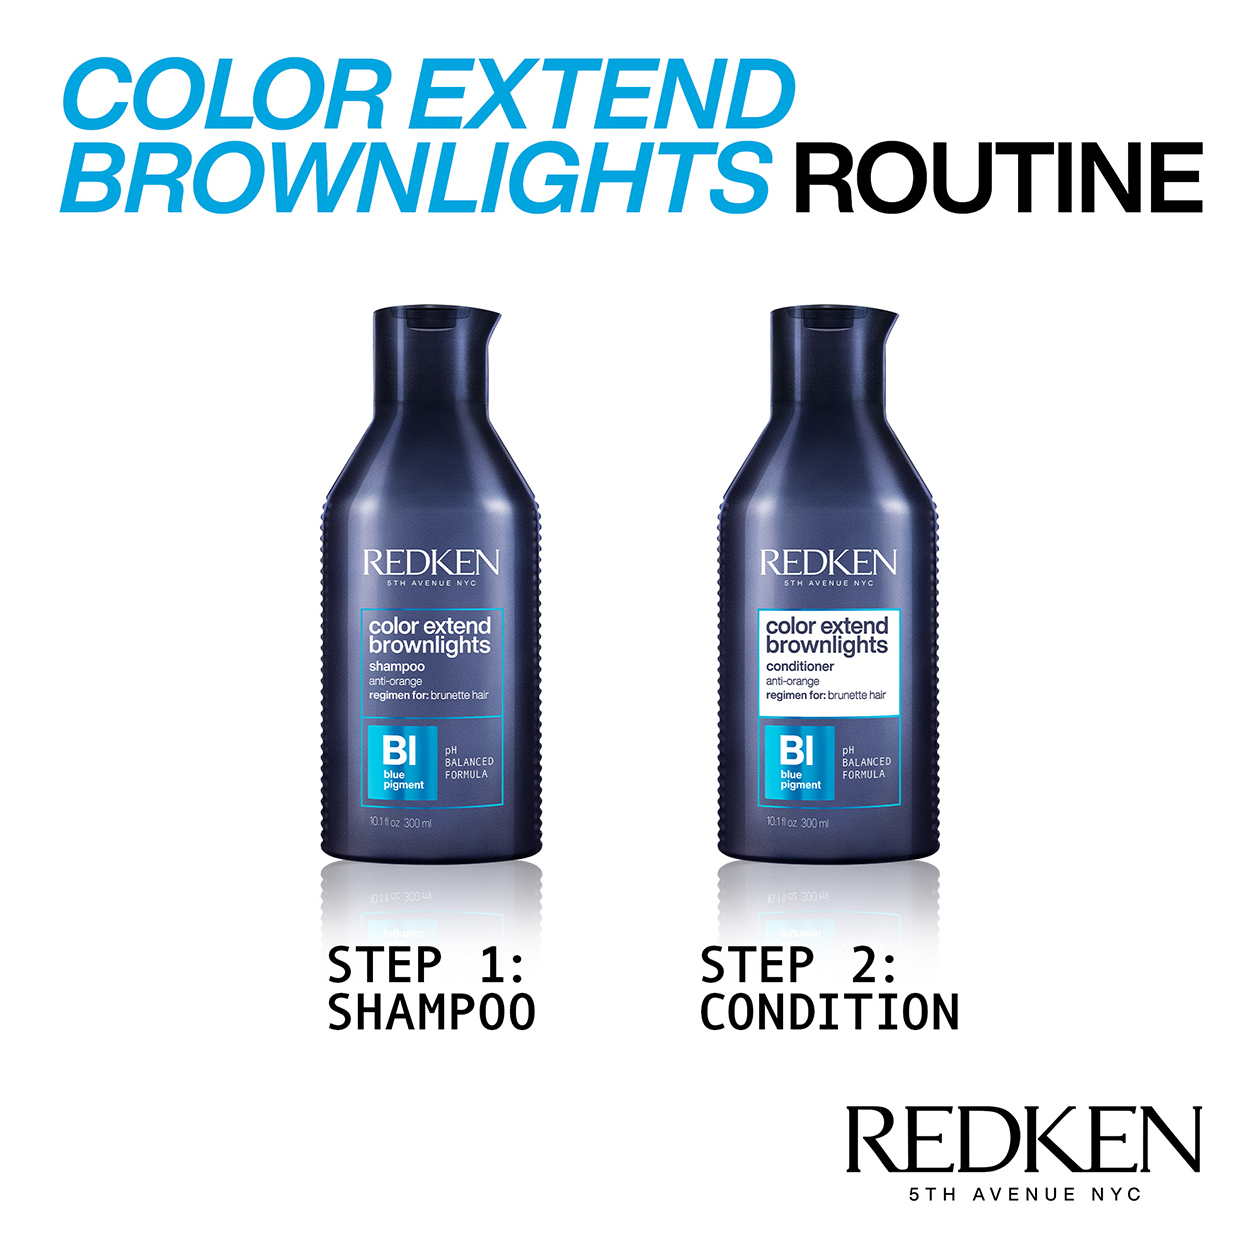 Redken-2020-Color-Extend-Brownlights-Regimen-Retail